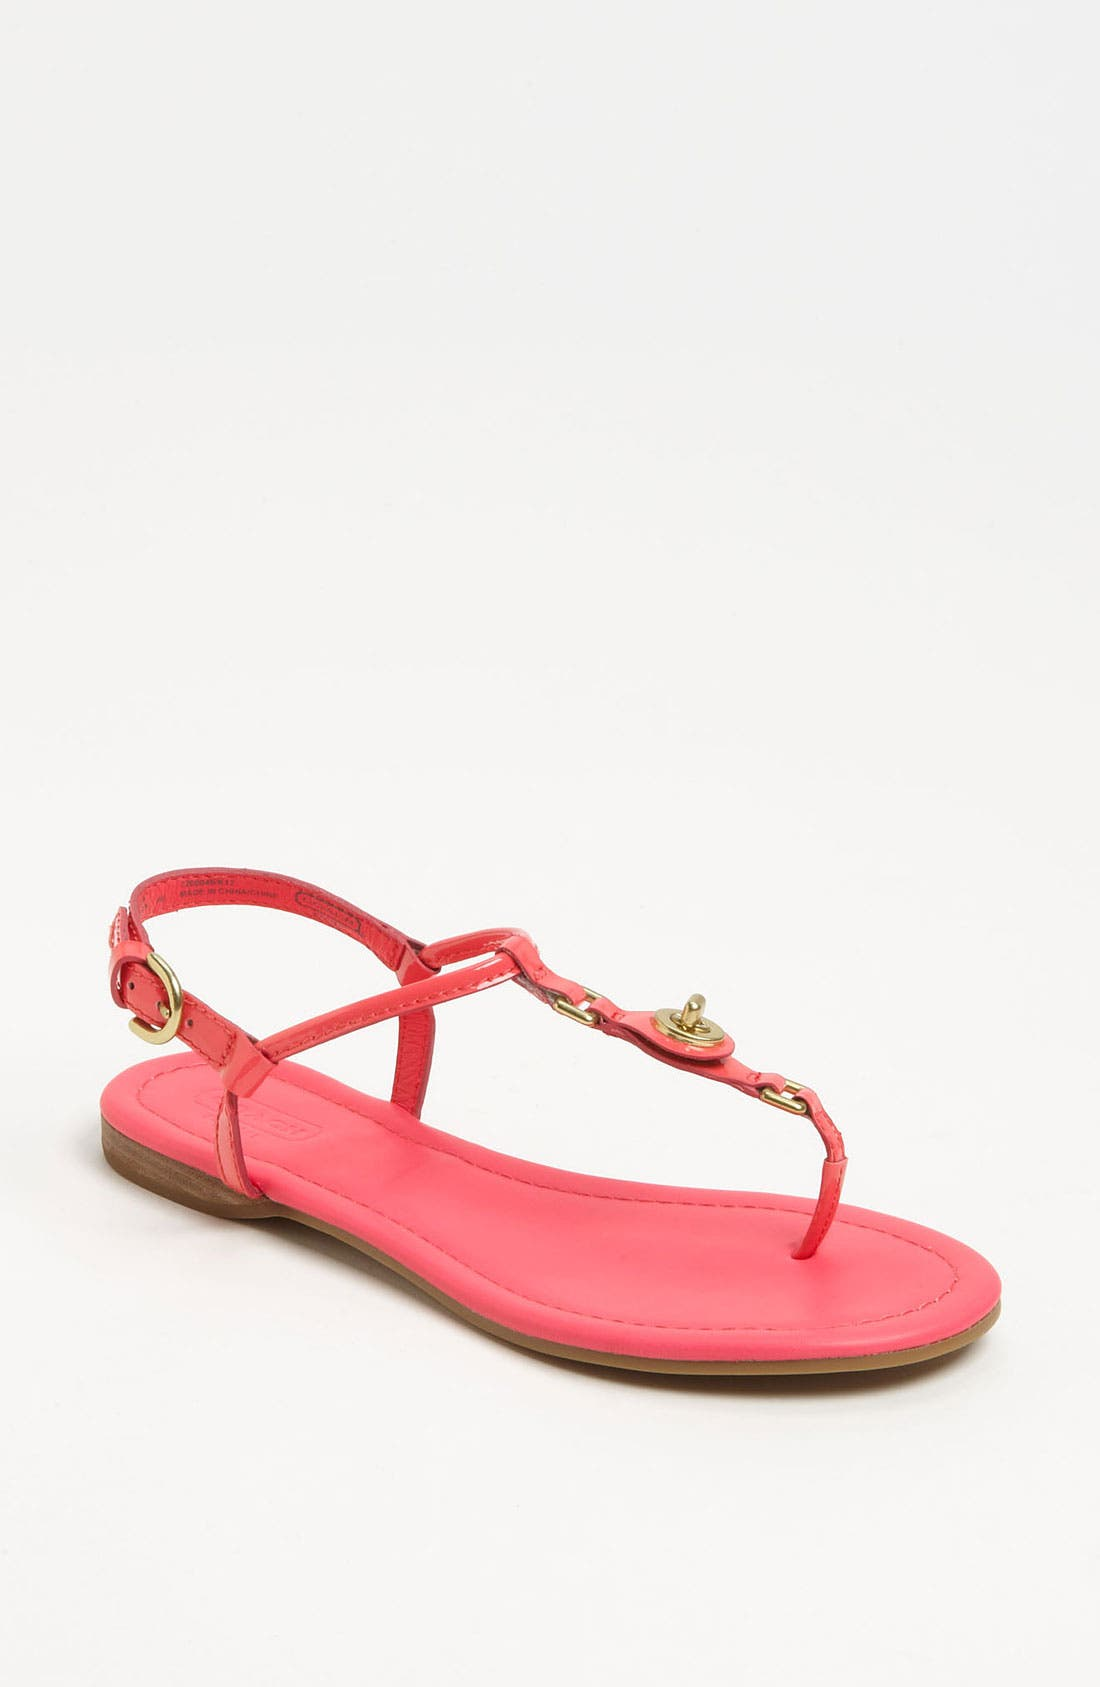 Alternate Image 1 Selected - COACH 'Robyn' Sandal